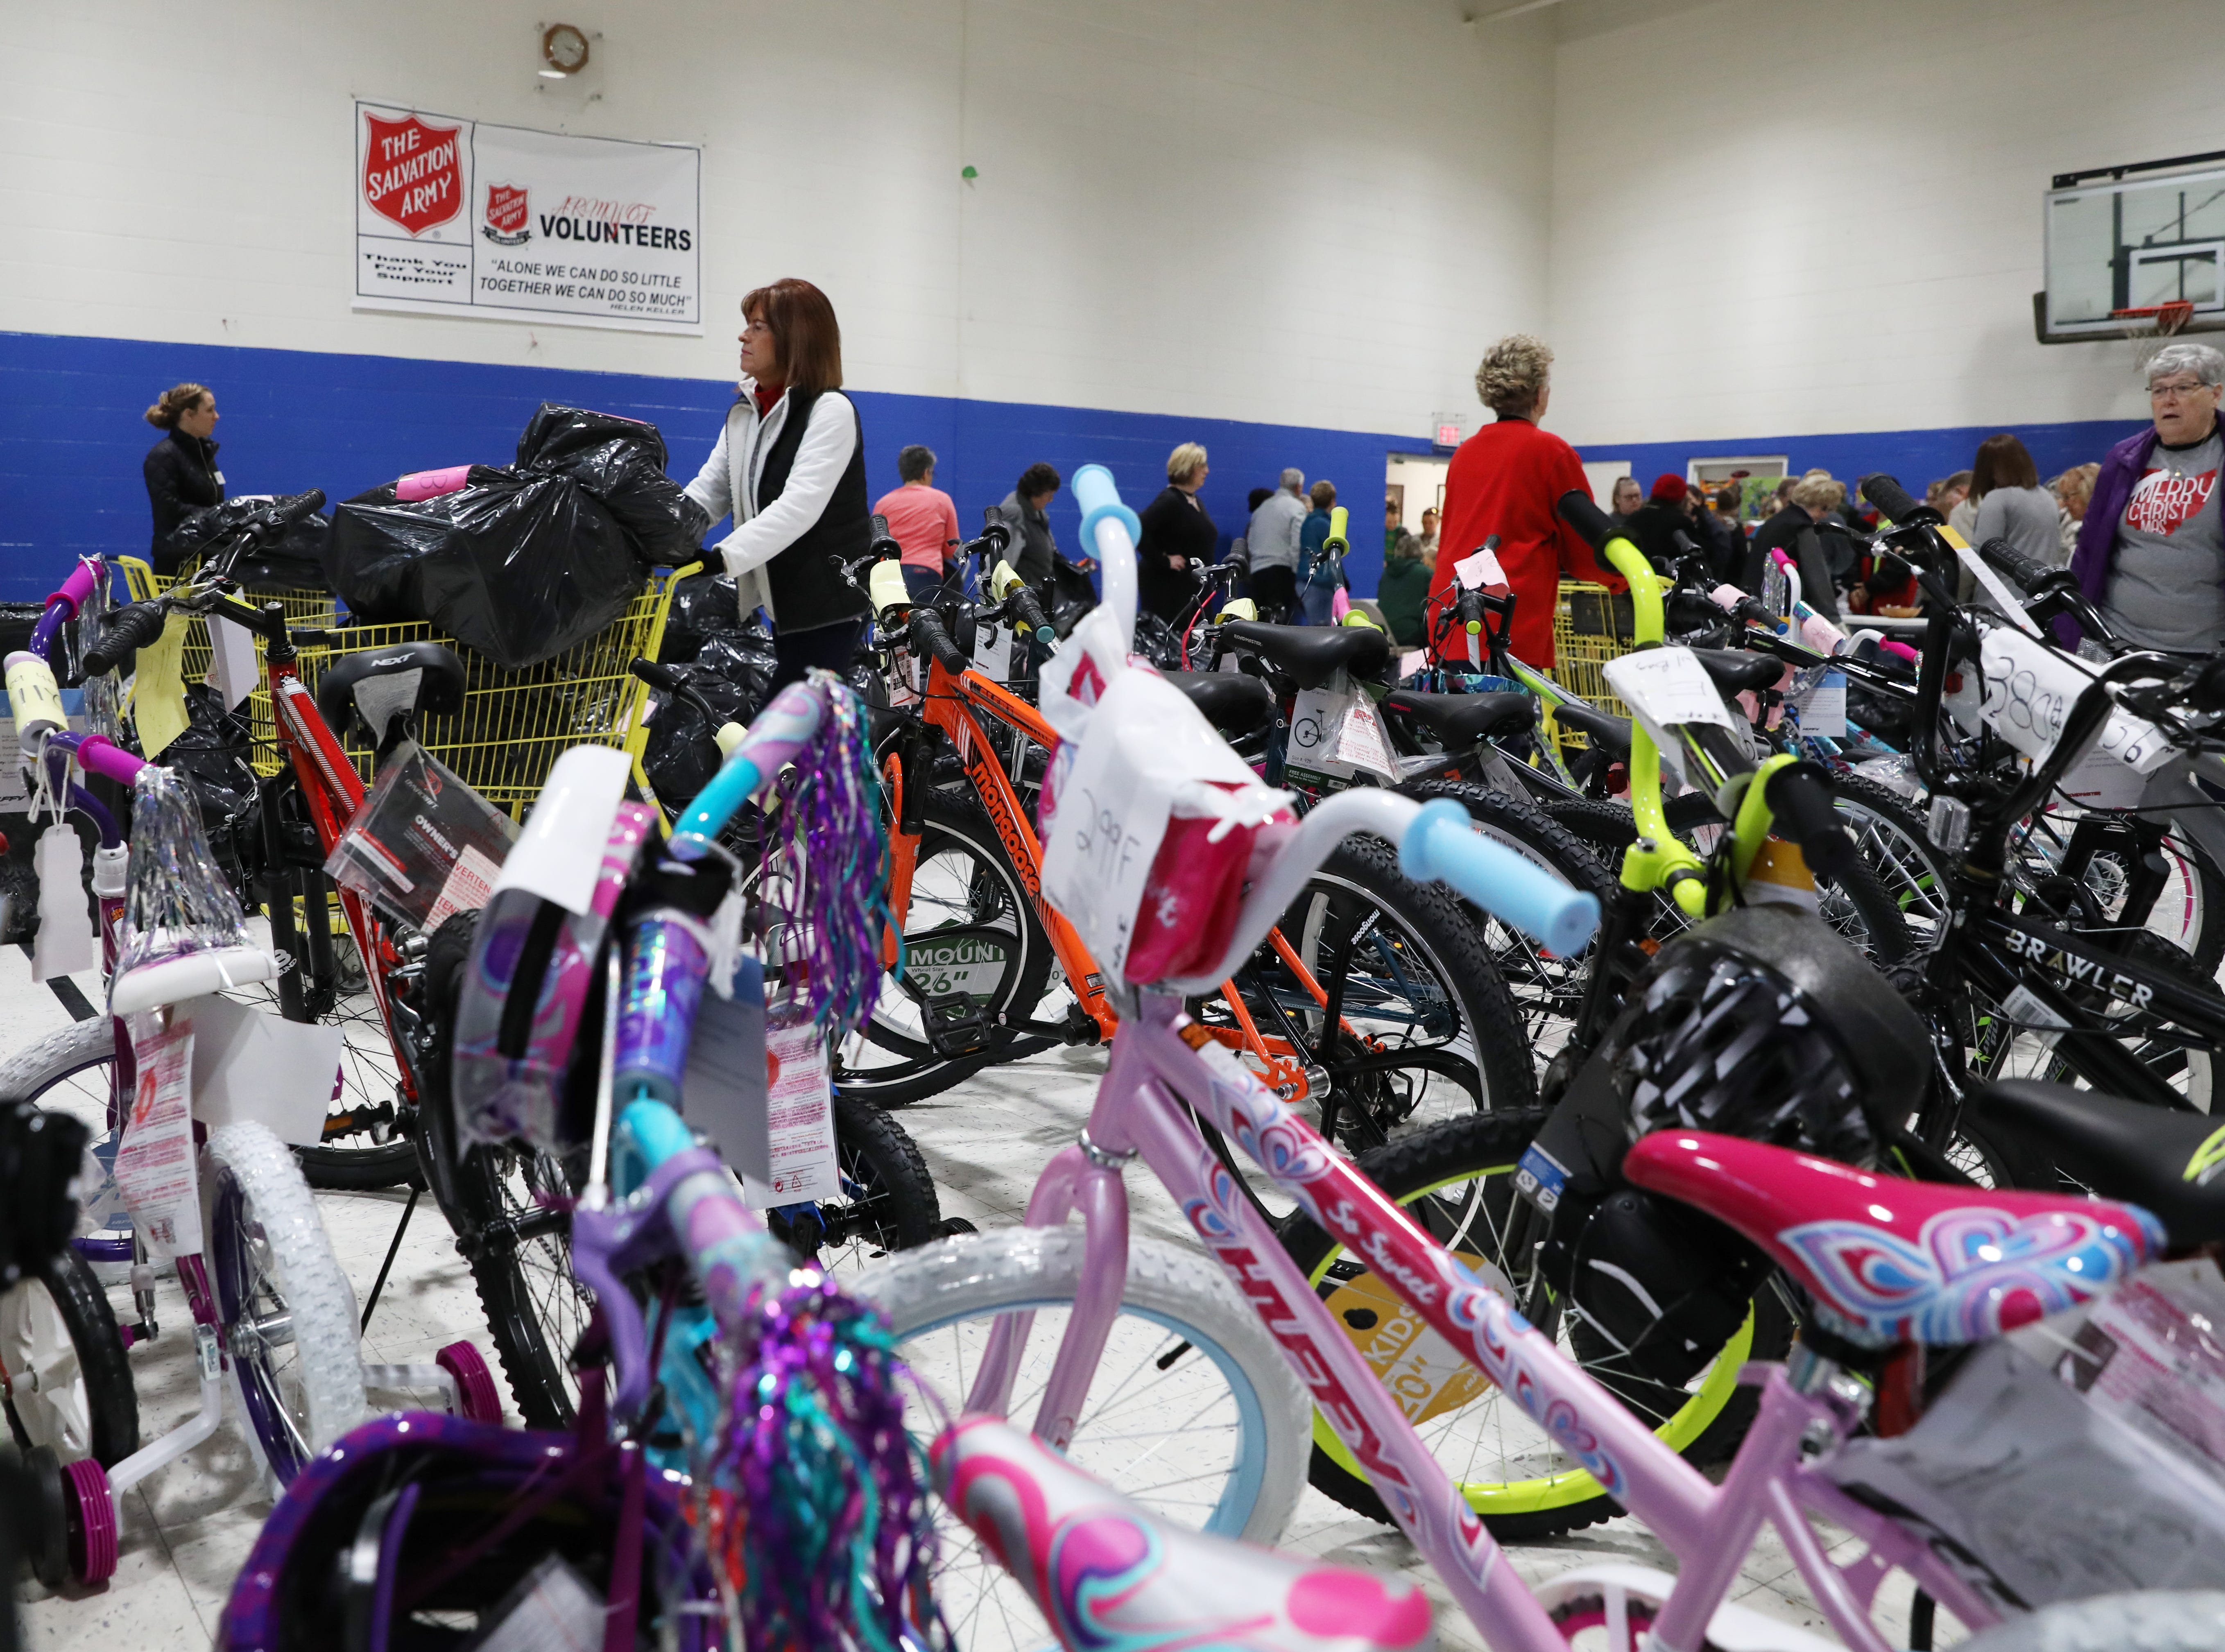 Volunteers place bags of presents during the Salvation Army present and food disbursement day on Tuesday.